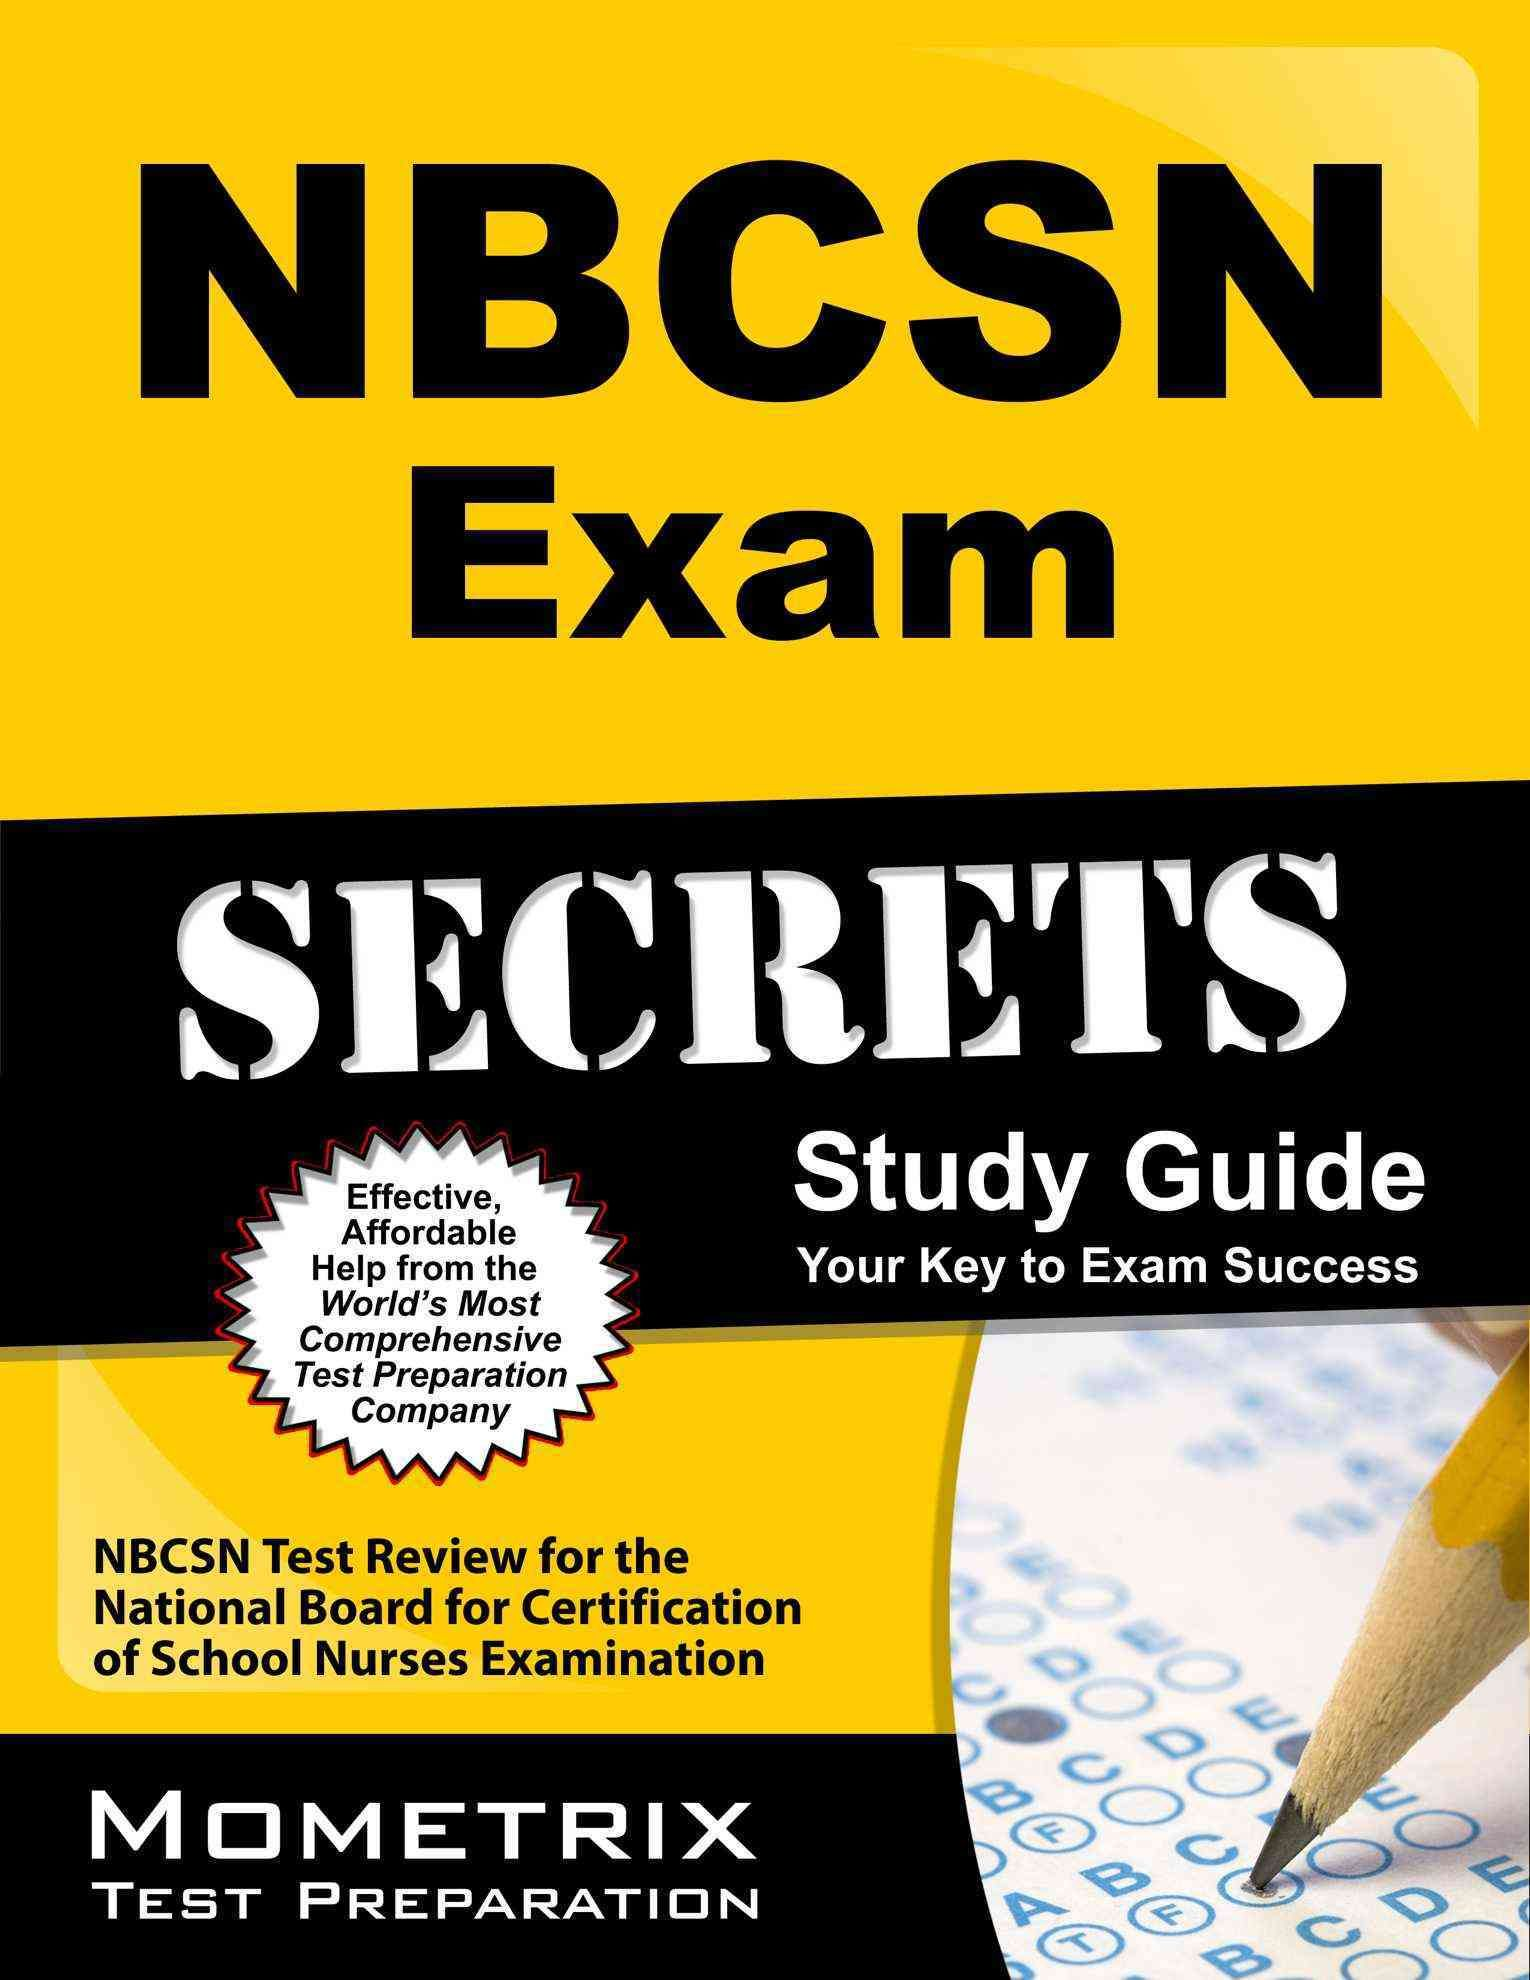 Nbcsn Exam Secrets Study Guide Nbcsn Test Review For The National